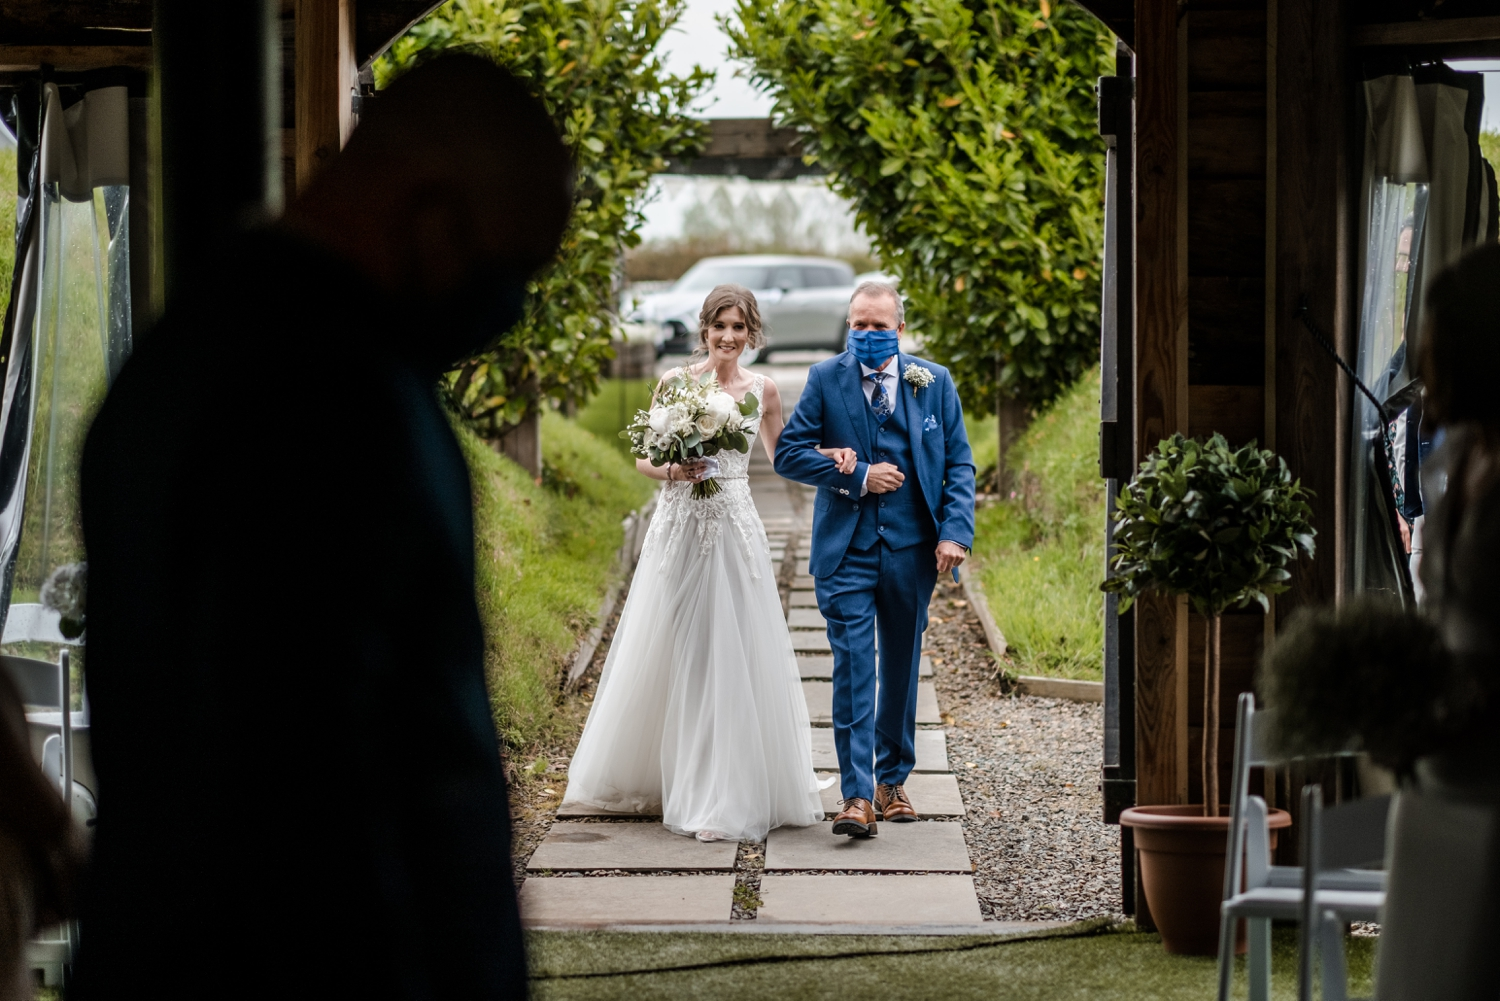 Marriage ceremony at Woodhouse Barn